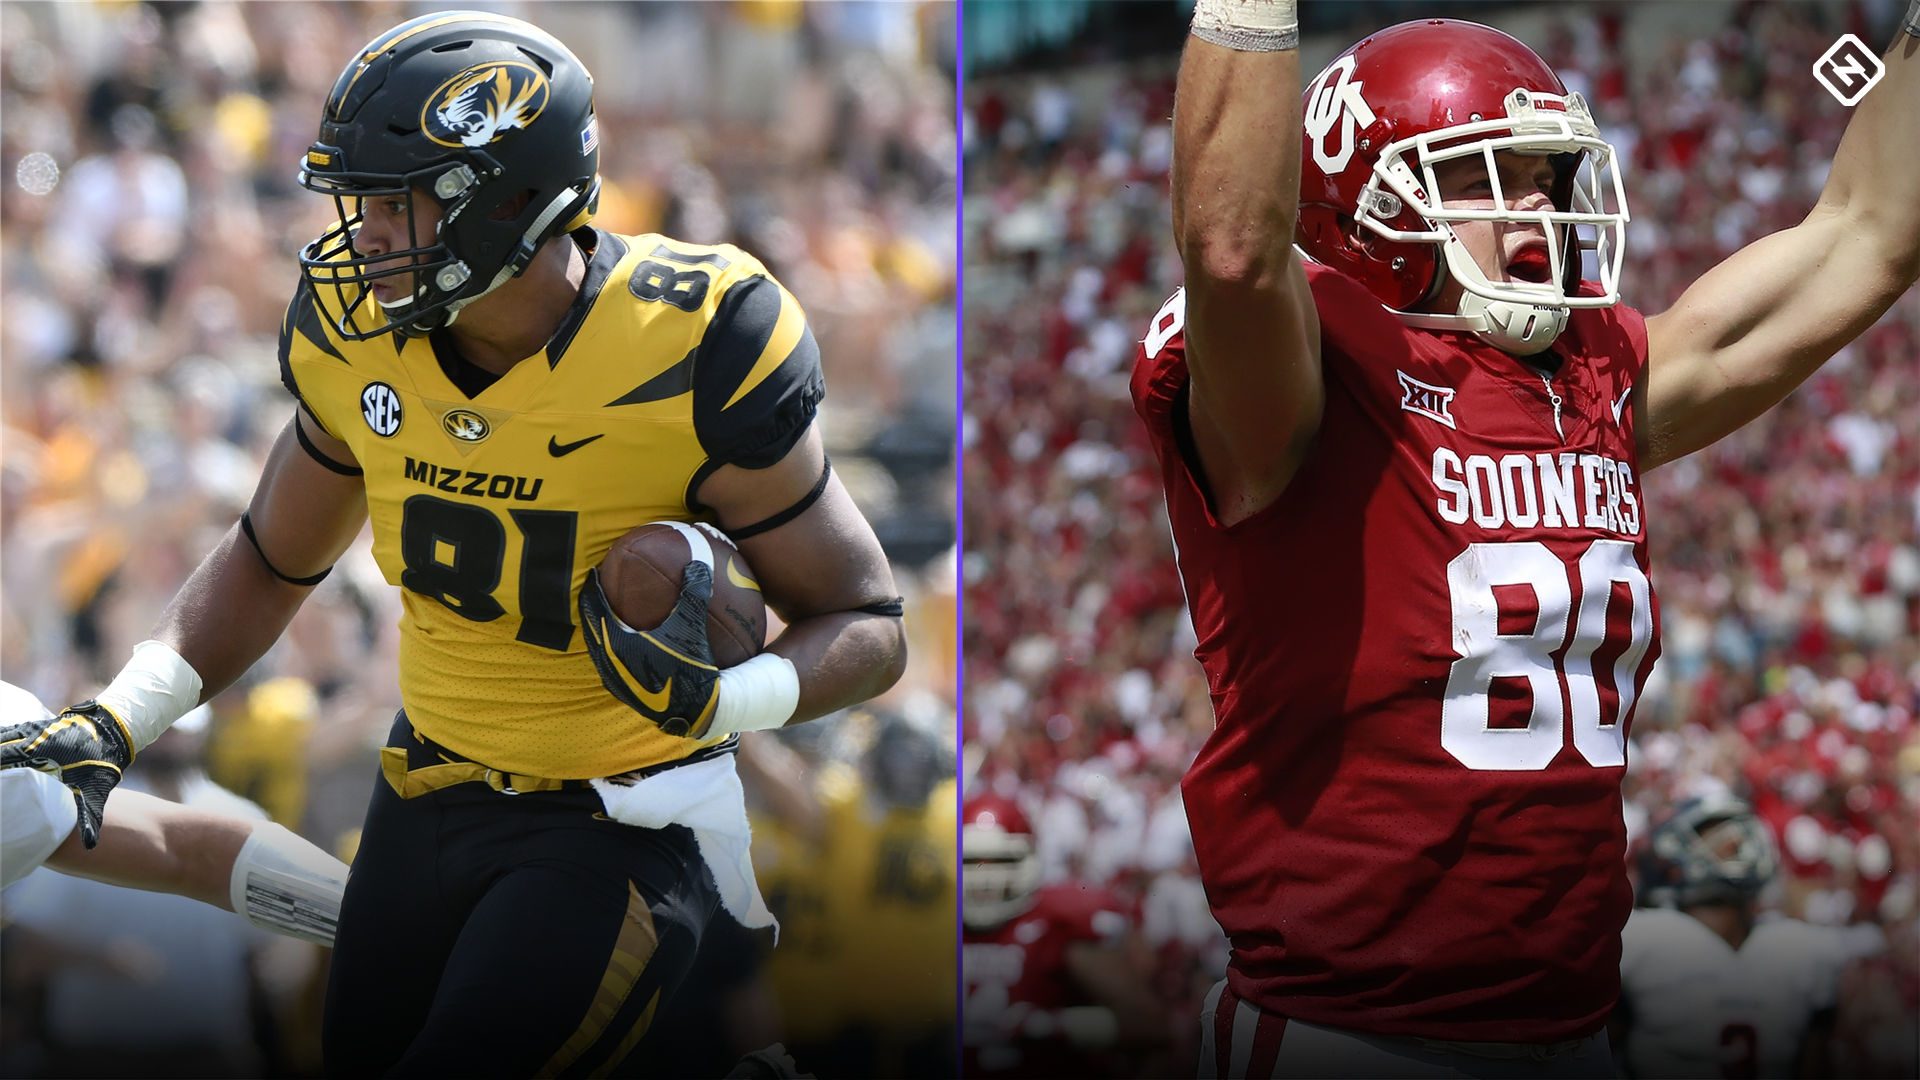 College Fantasy Football Rankings: Tight end